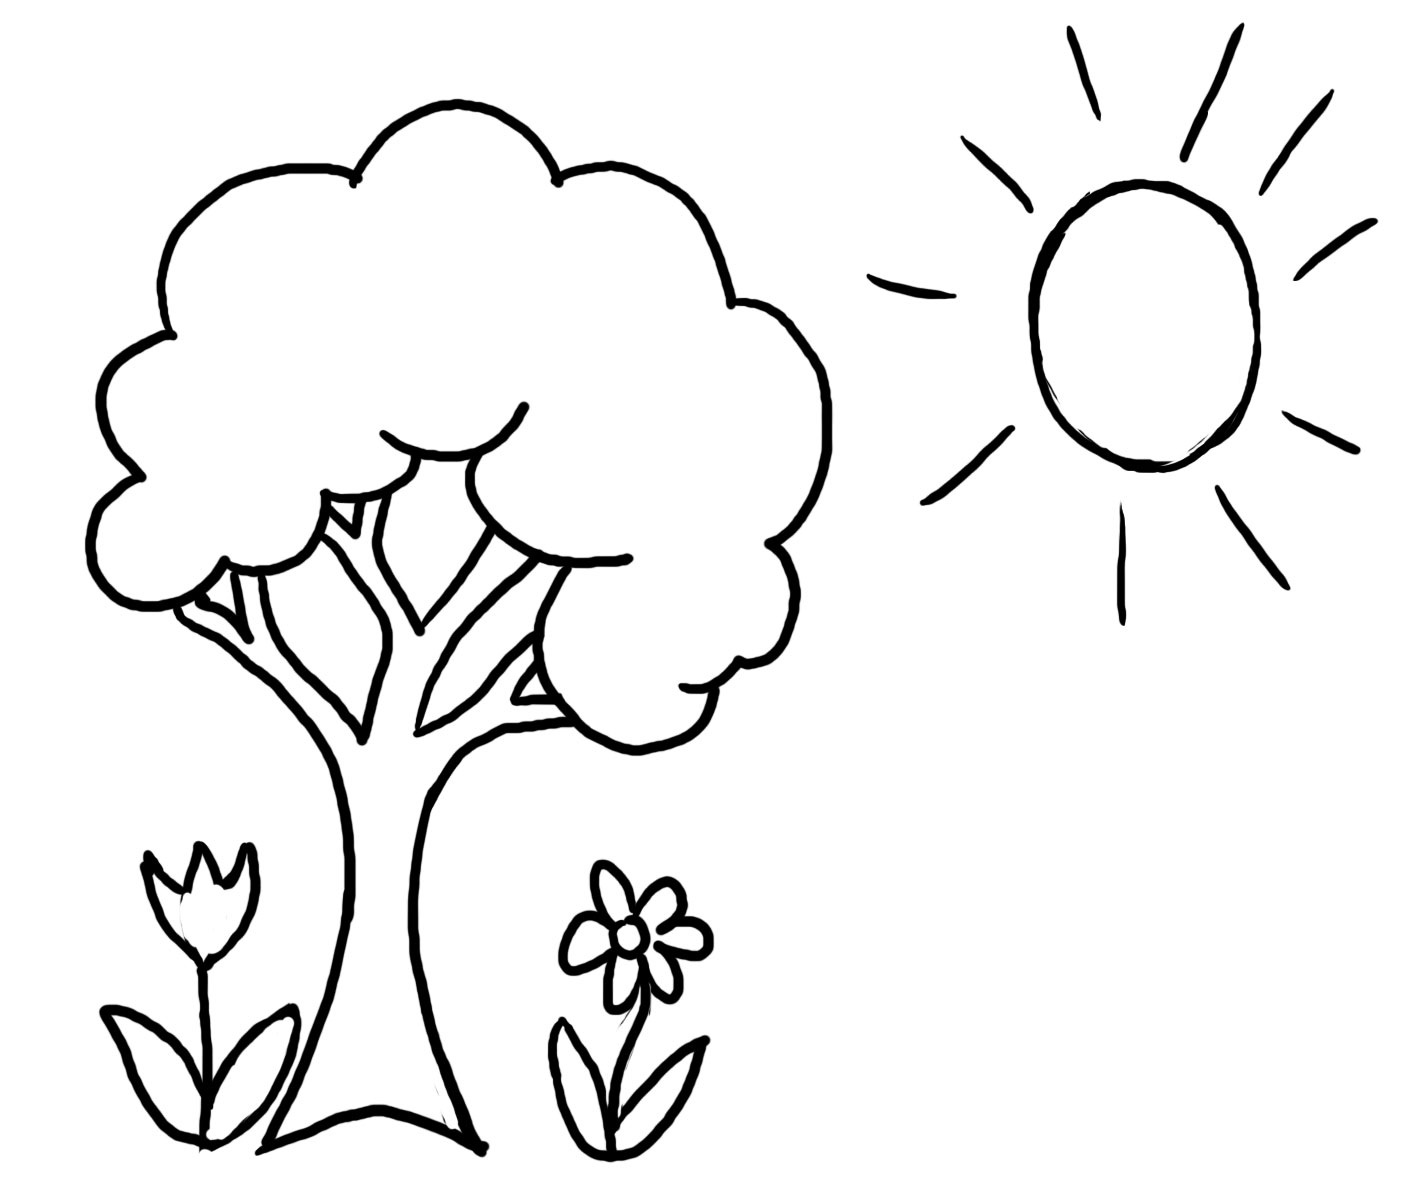 coloring book pages for preschool - photo#13